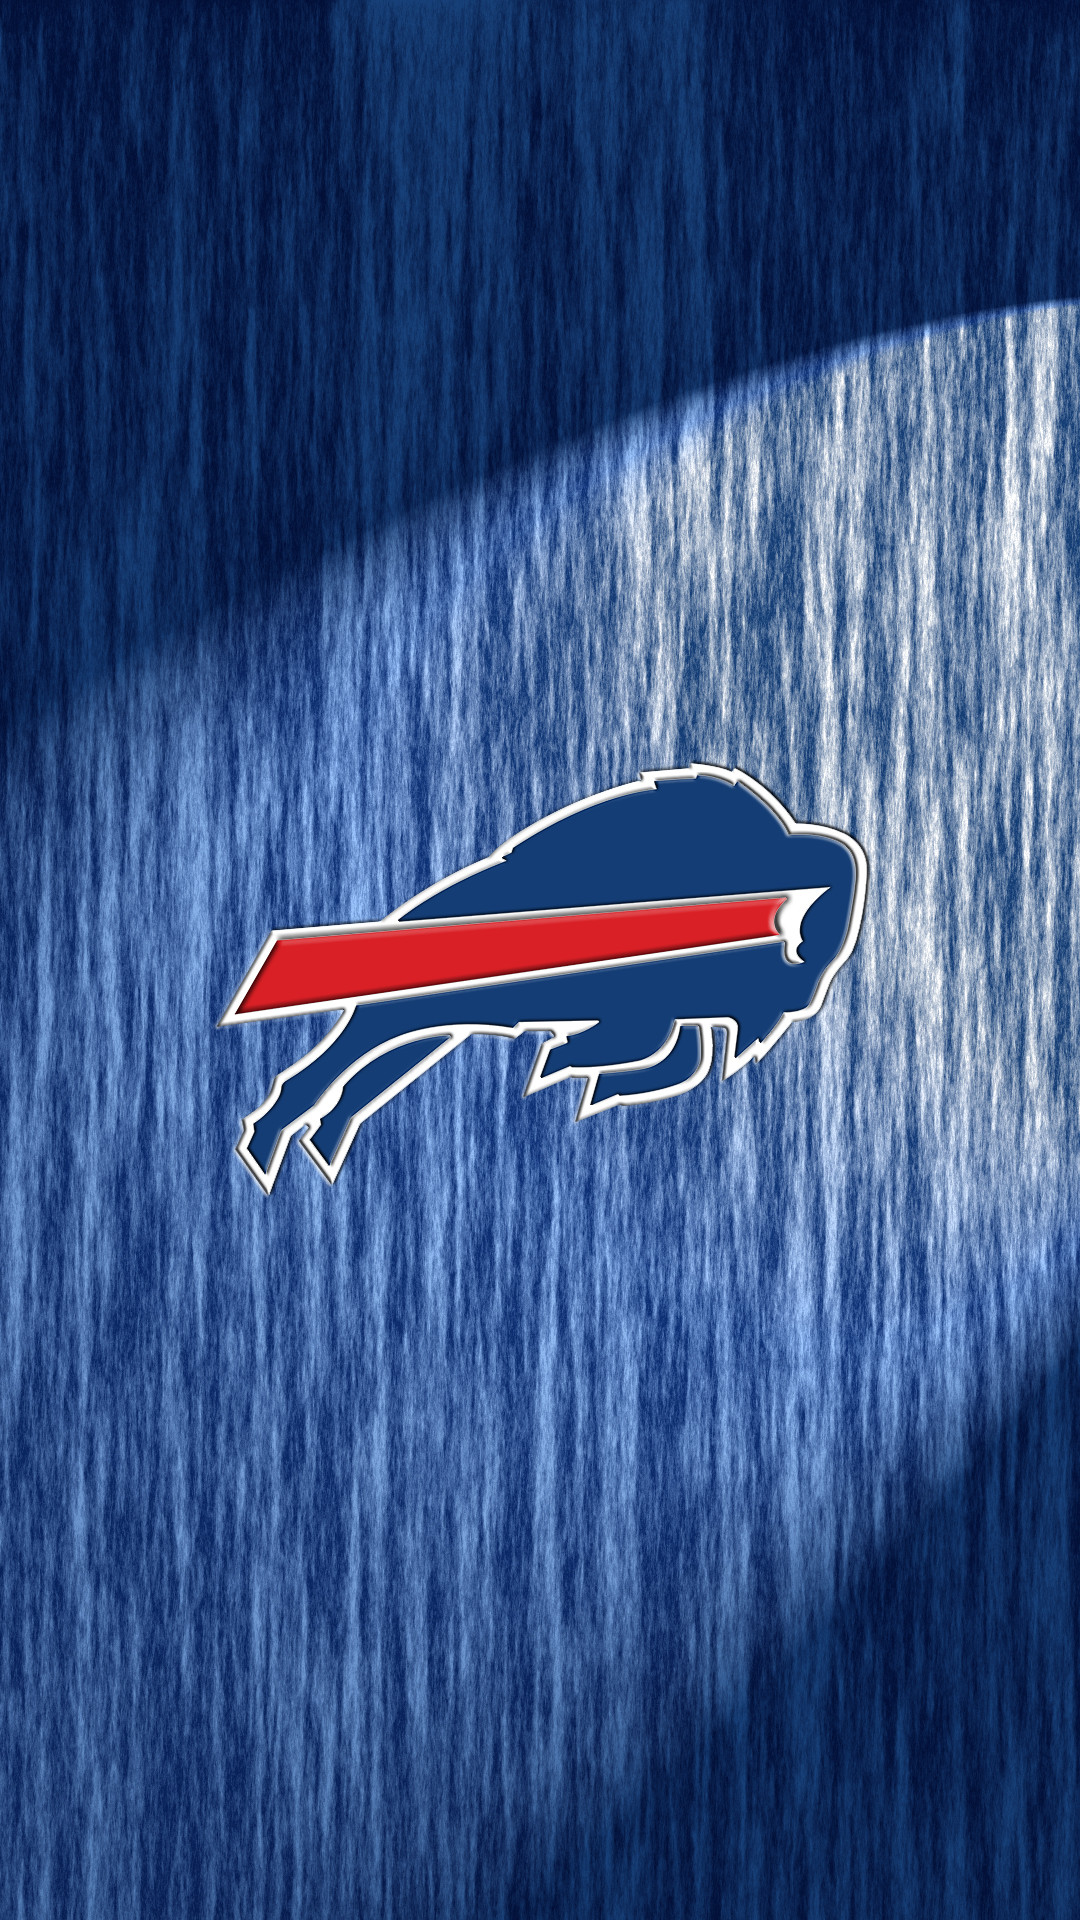 2880x1800 Buffalo Bills Wallpaper Screensaver